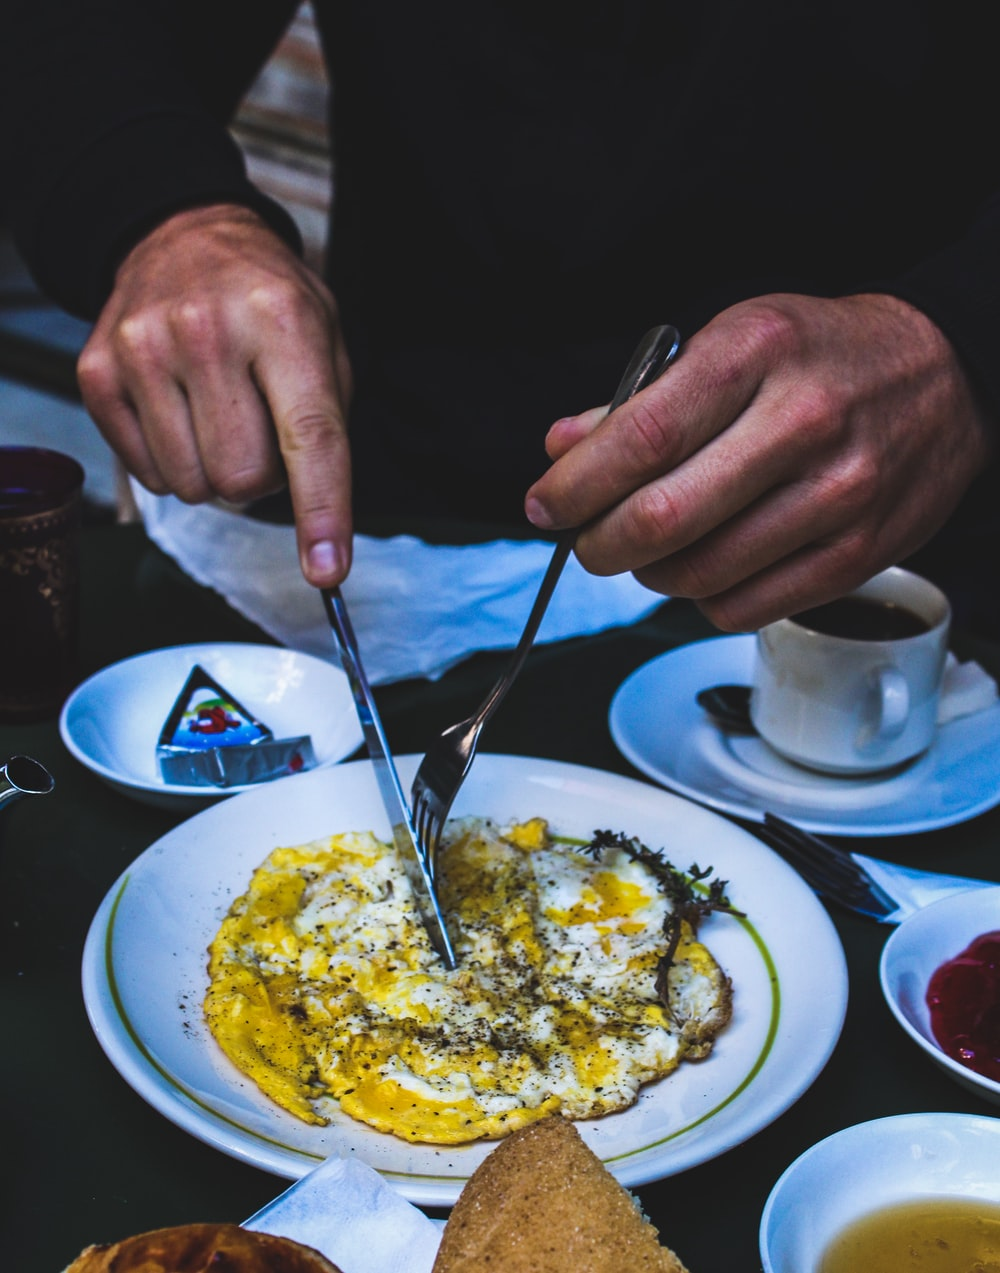 person holding butter knife and fork over cooked egg